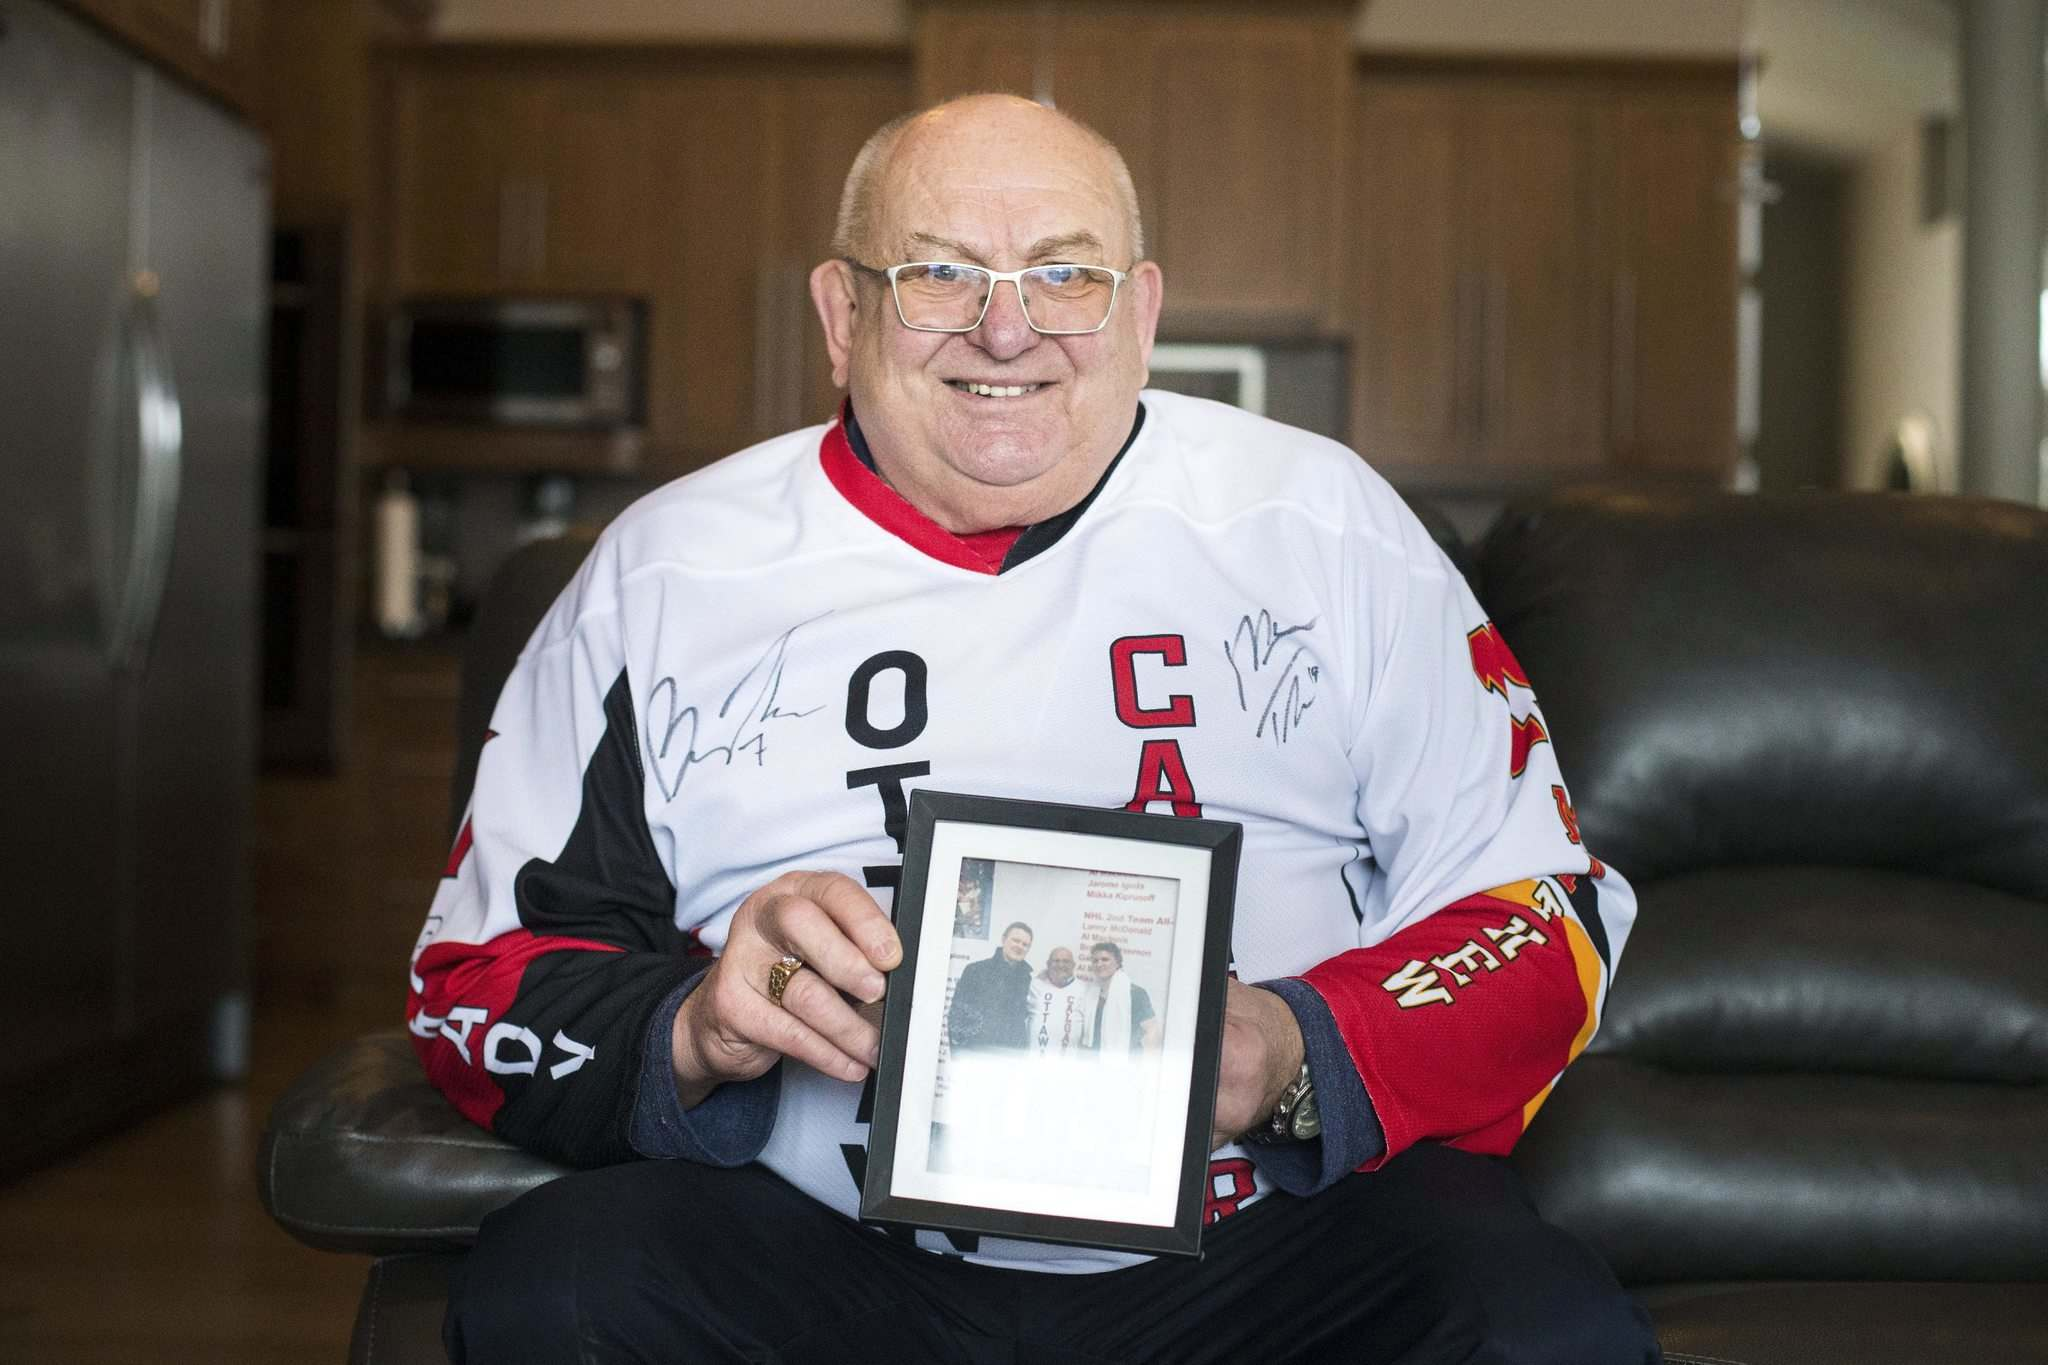 """""""I was always a Jets fan, back when Keith played here and in the John Ferguson days. We go back in history with the Jets a long way. But when it comes to the boys, blood is thicker. Not that I'm not faithful to the Jets, but I've got to cheer my boys on,"""" said Oster."""